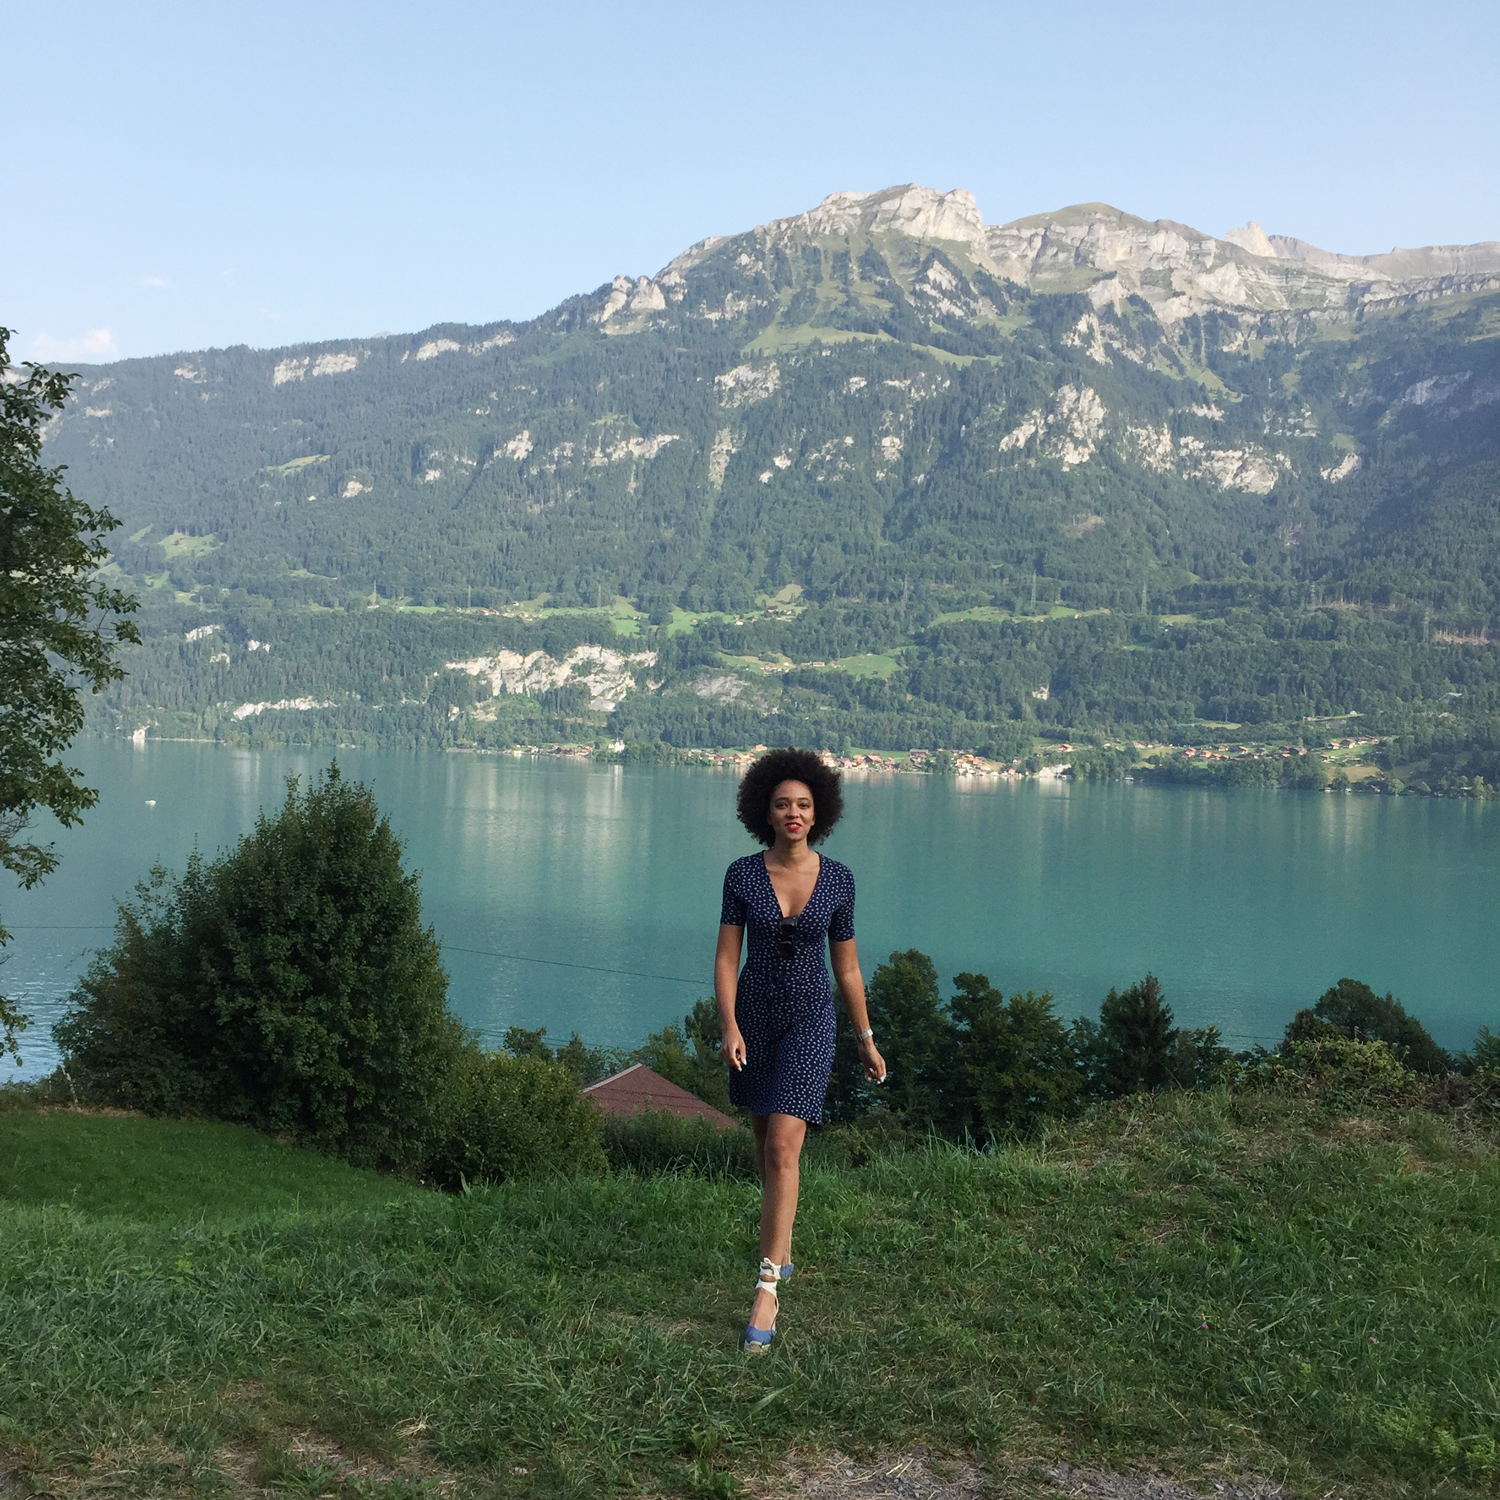 mercredie-blog-geneve-suisse-voyage-my-switzerland-grand-tour-roadtrip-europcar-accor-interlaken-view-visit